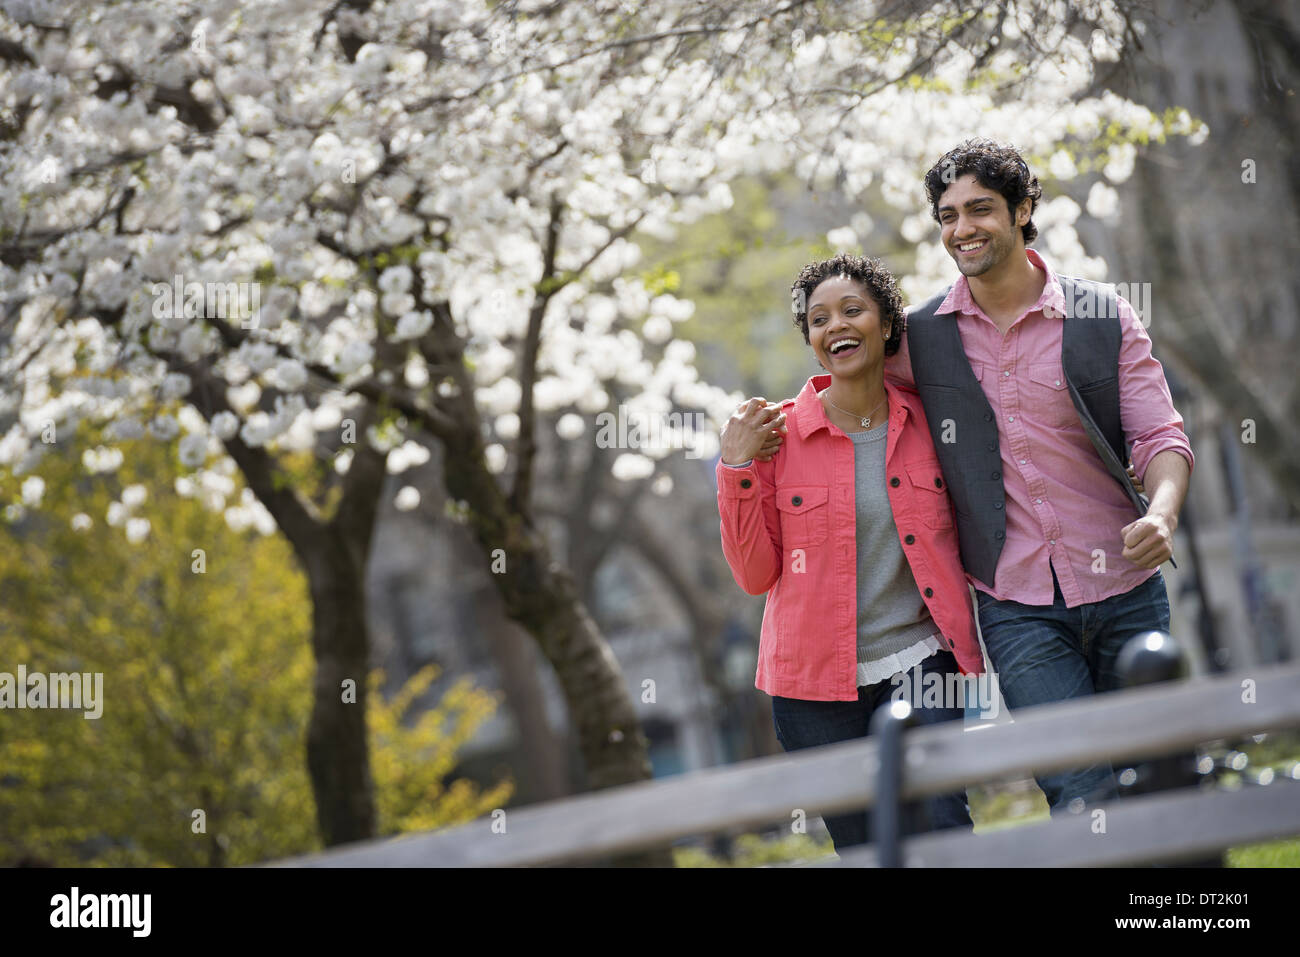 park A man and woman side by side - Stock Image